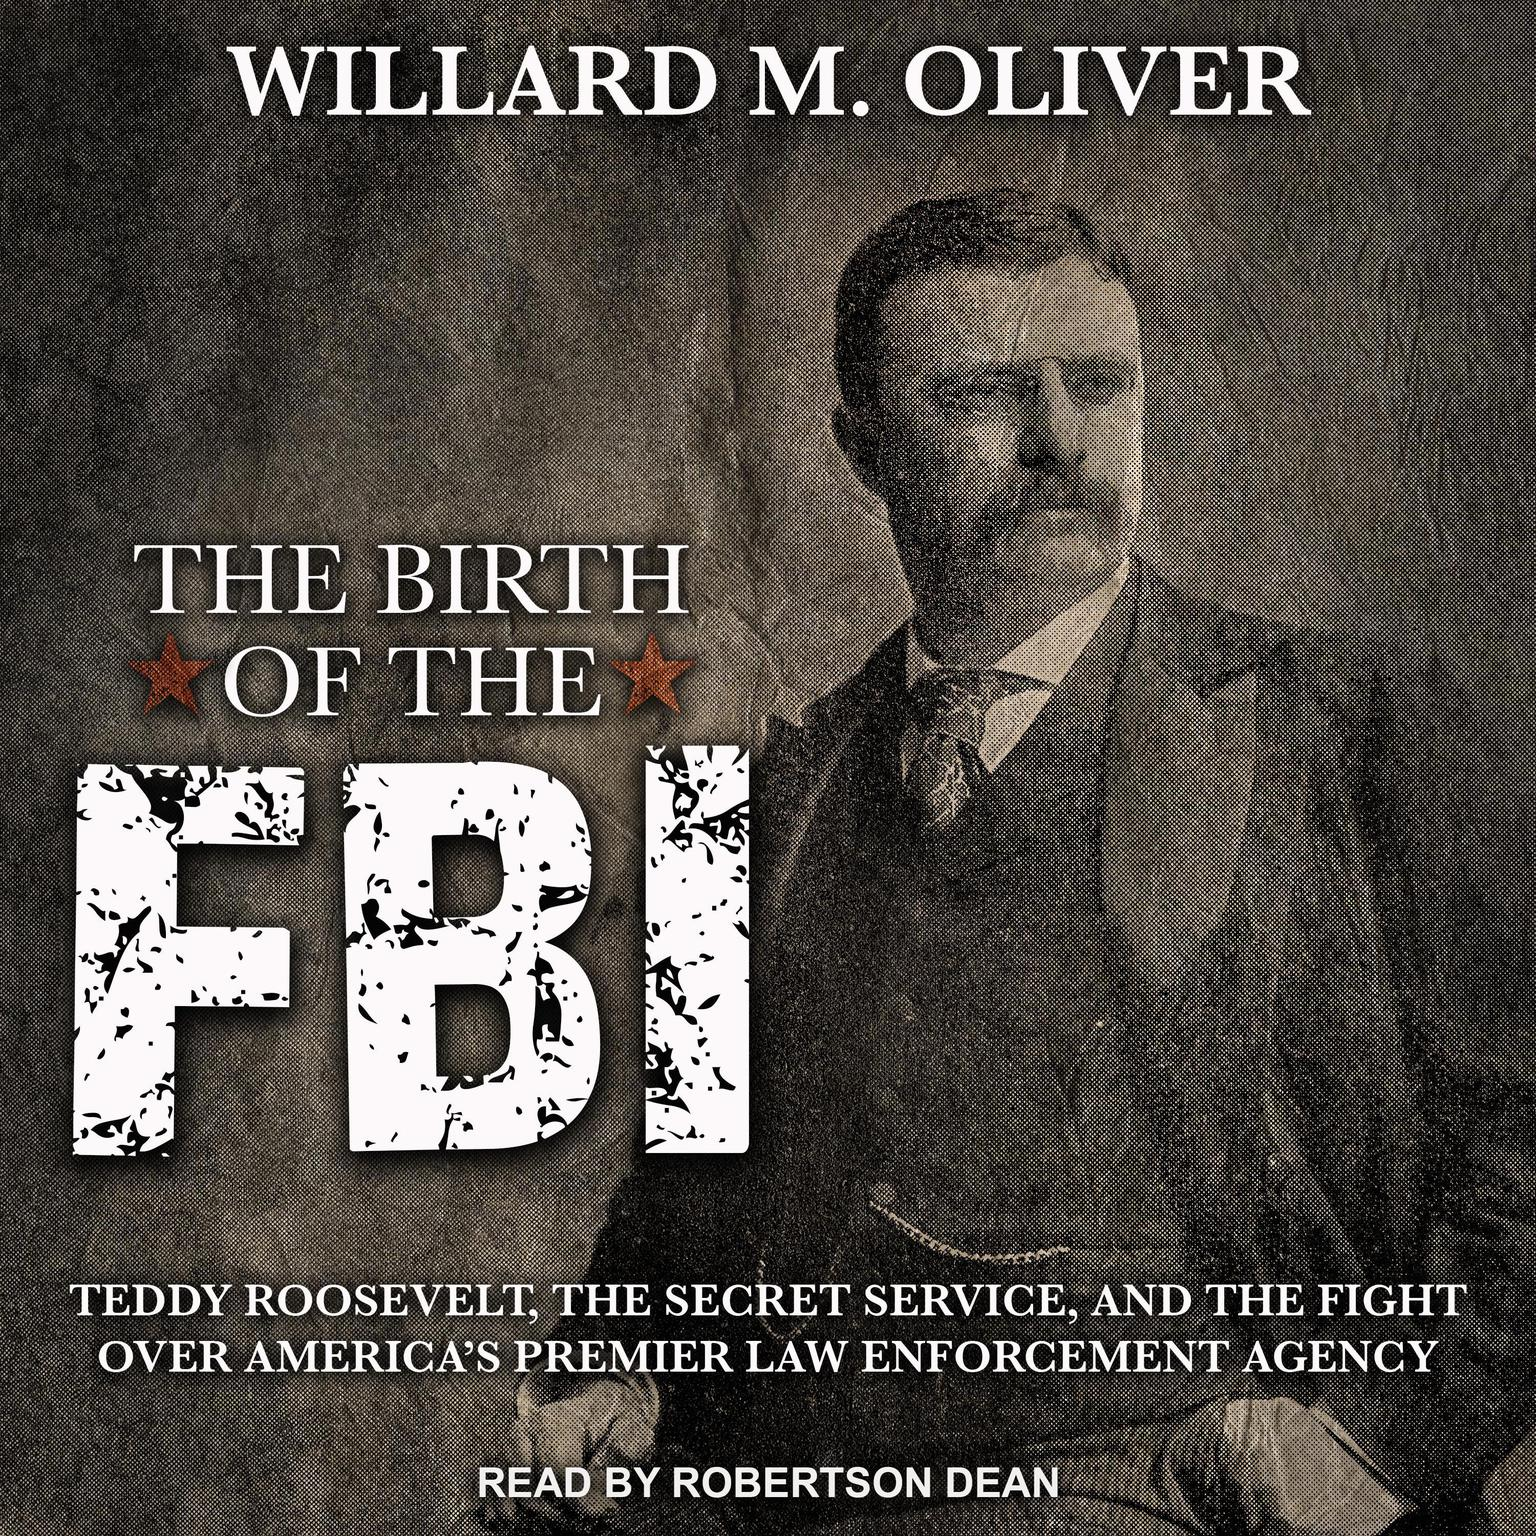 The Birth of the FBI: Teddy Roosevelt, the Secret Service, and the Fight Over Americas Premier Law Enforcement Agency Audiobook, by Willard M. Oliver